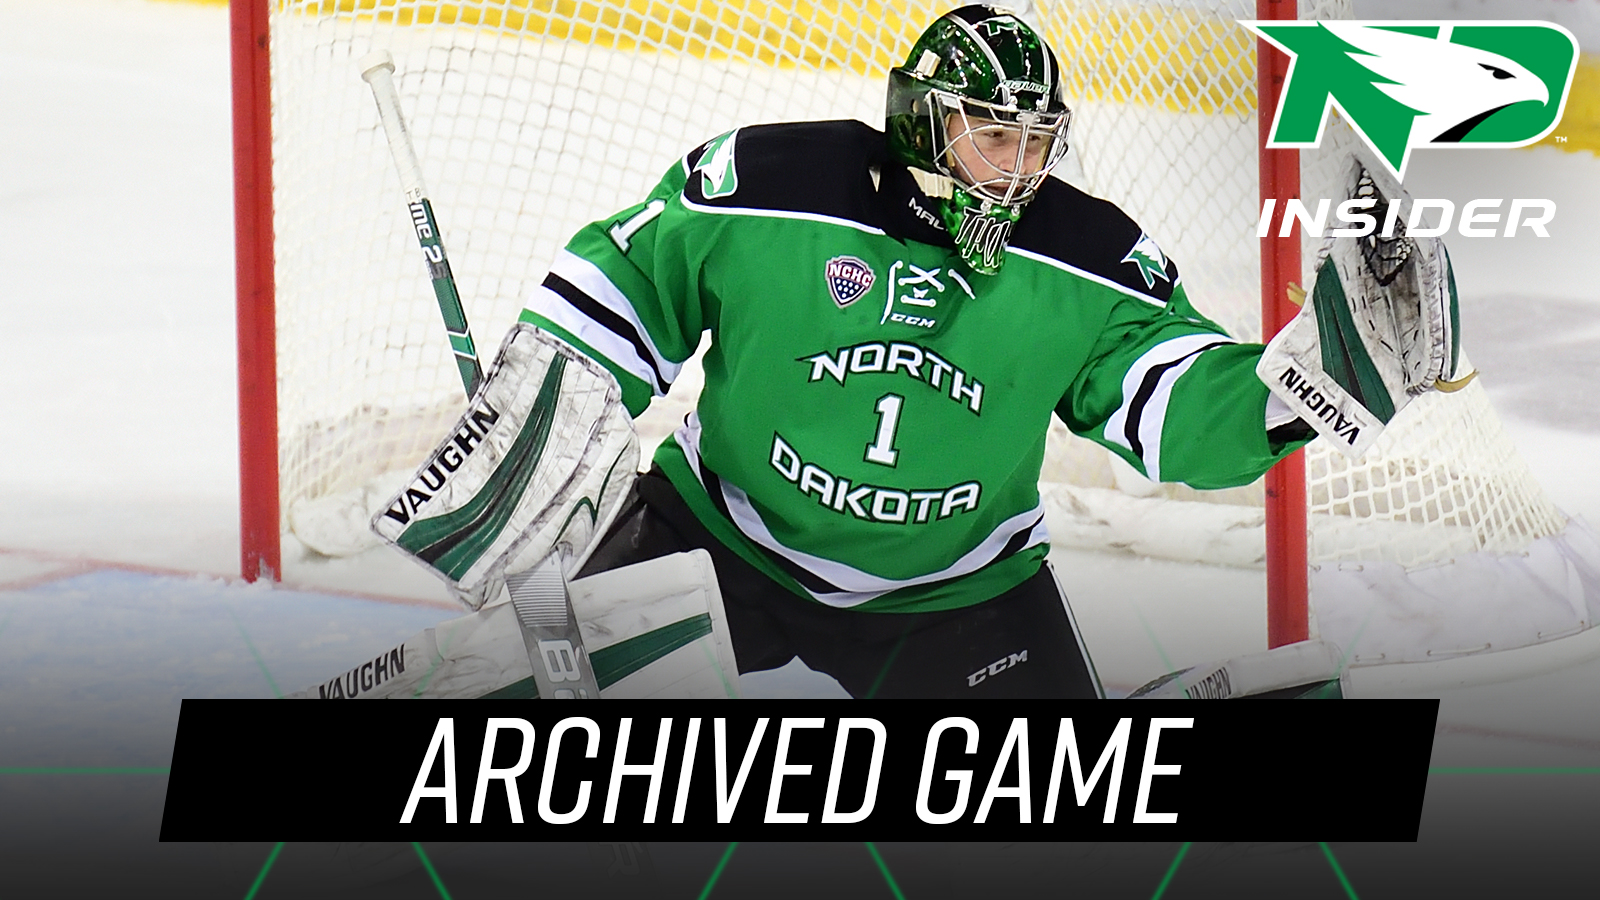 UND adds six newcomers to 2019-20 roster - University of